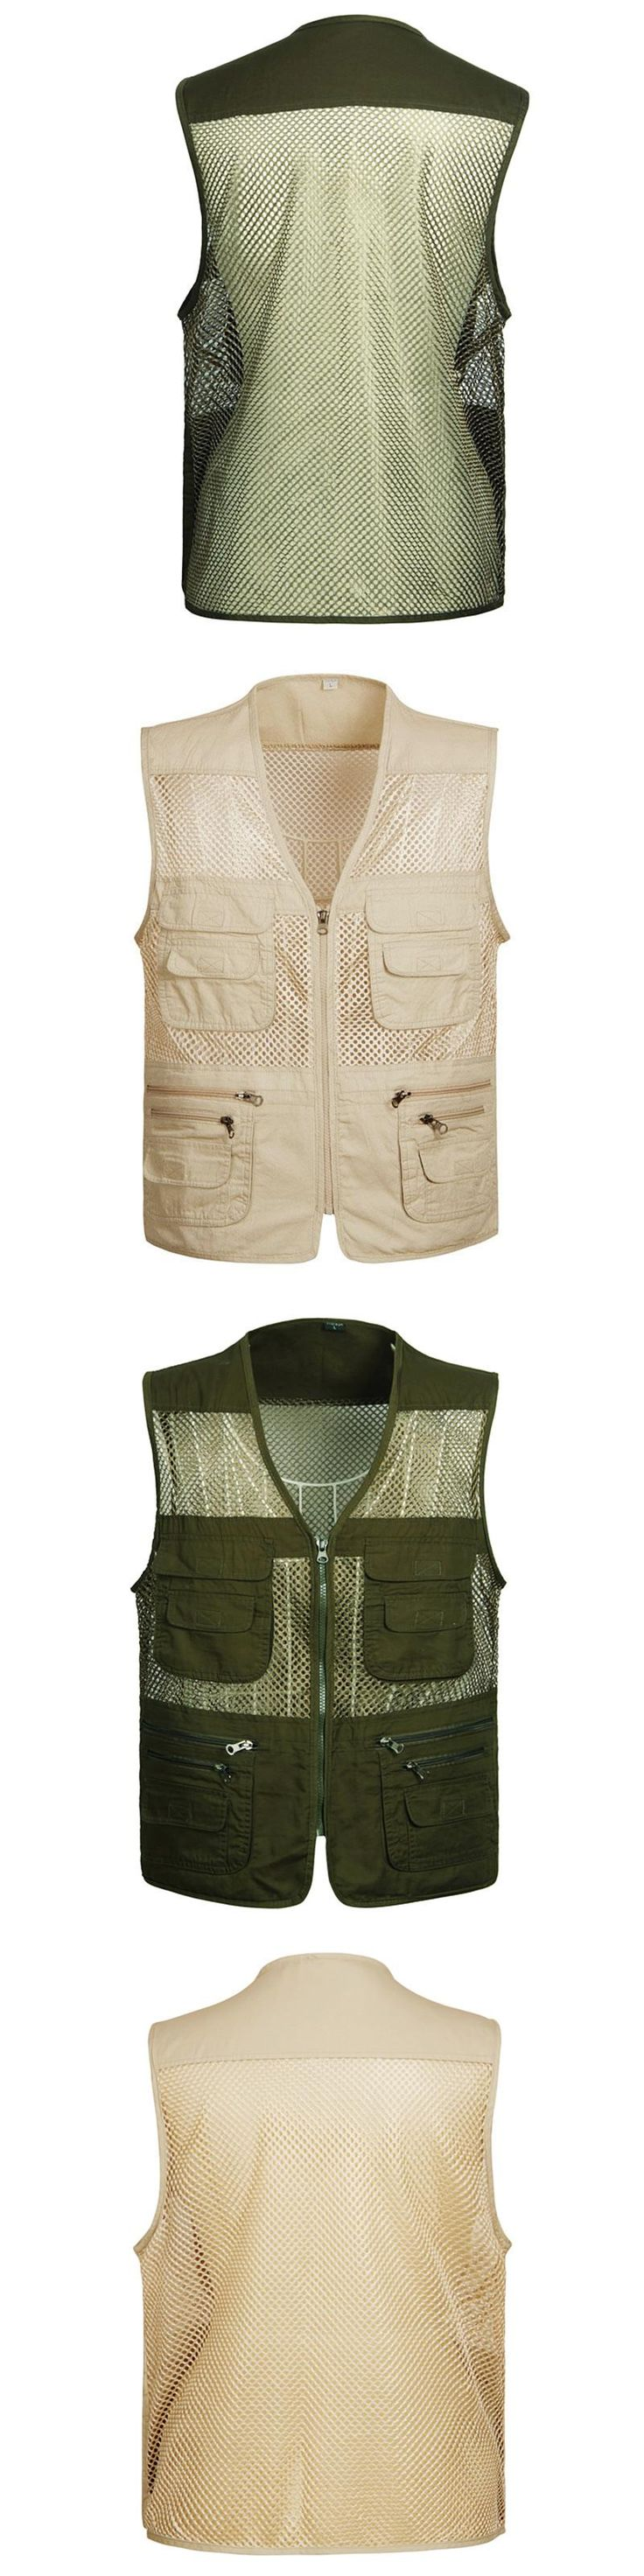 New Man Clothing Spring Autumn Mesh Vest Zipper Multi Pockets Photographer Vest Casual Men Khaki and military green Clothes